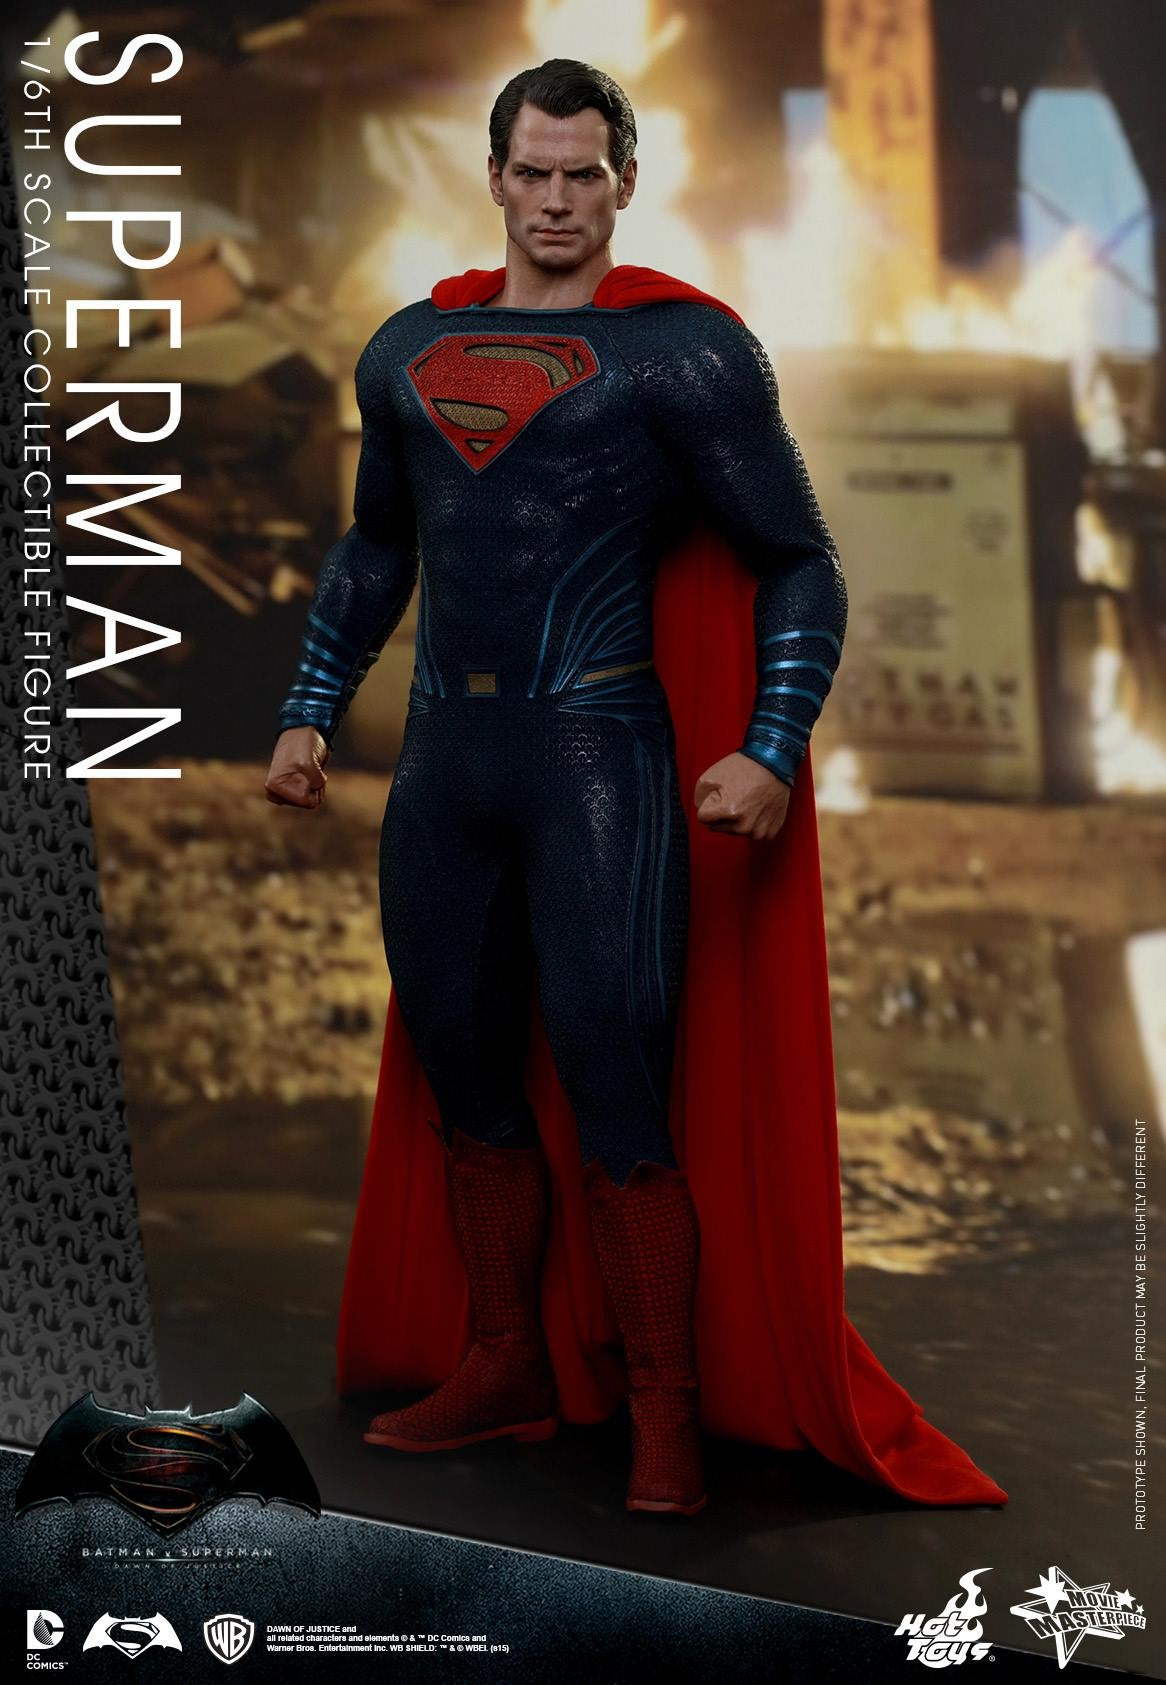 [Action Figures] Todo sobre Action Figures, Hot Toys, Sideshows - Página 6 Bvs-hot-toys-superman-2-162887